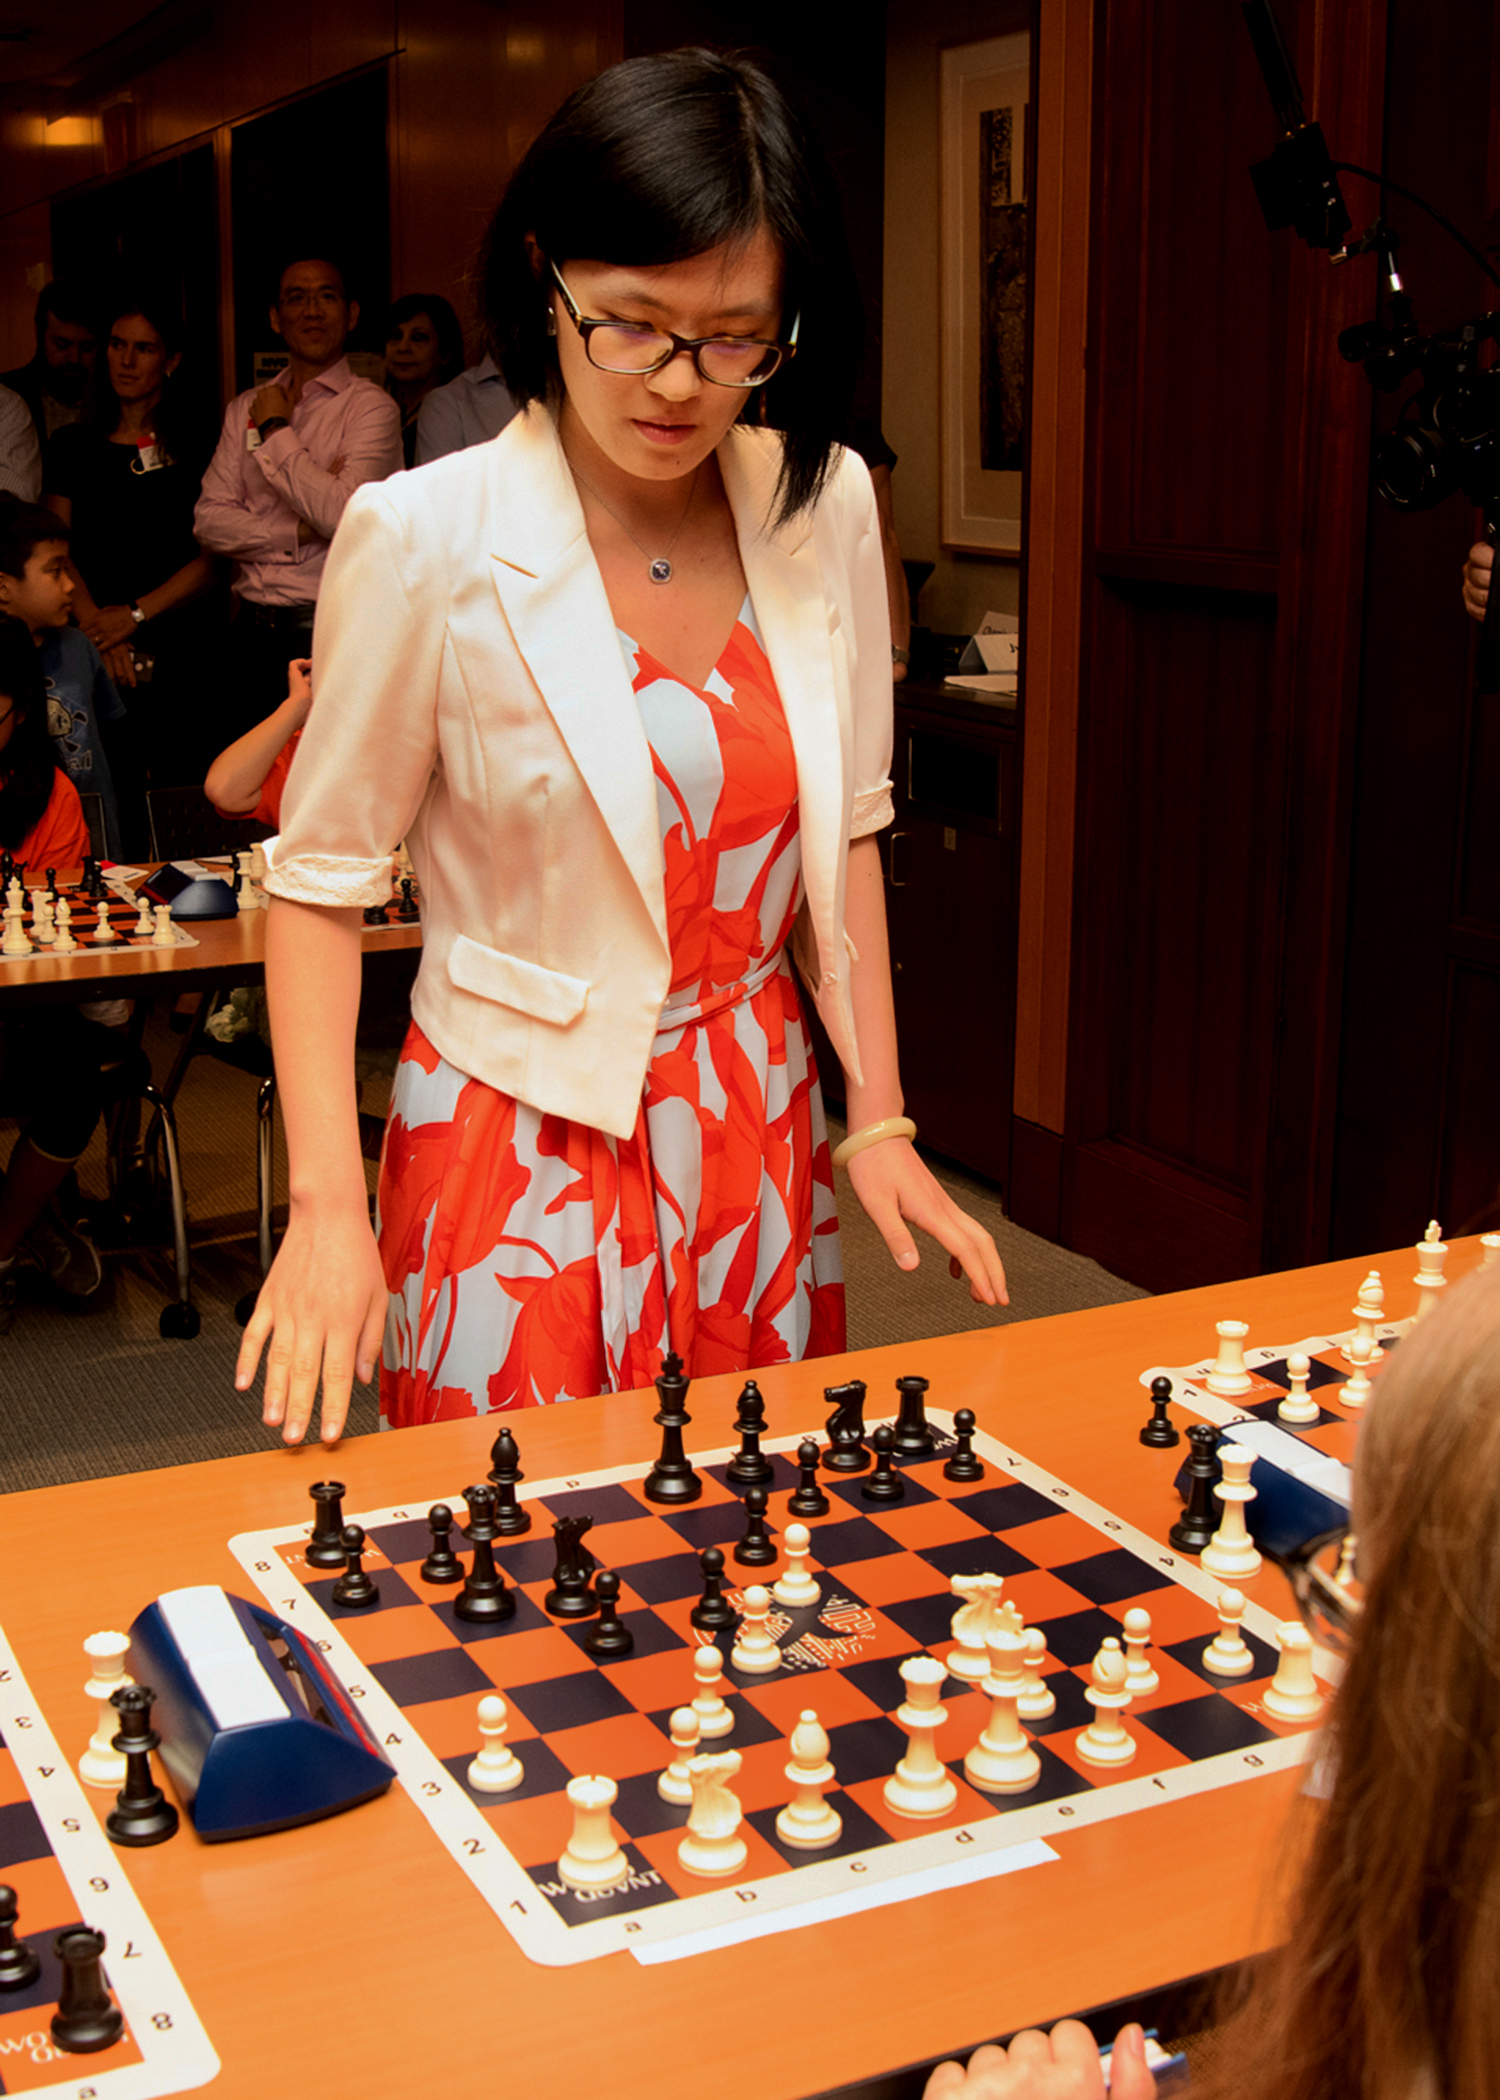 08.12.19 - chess event (40 of 139).jpg